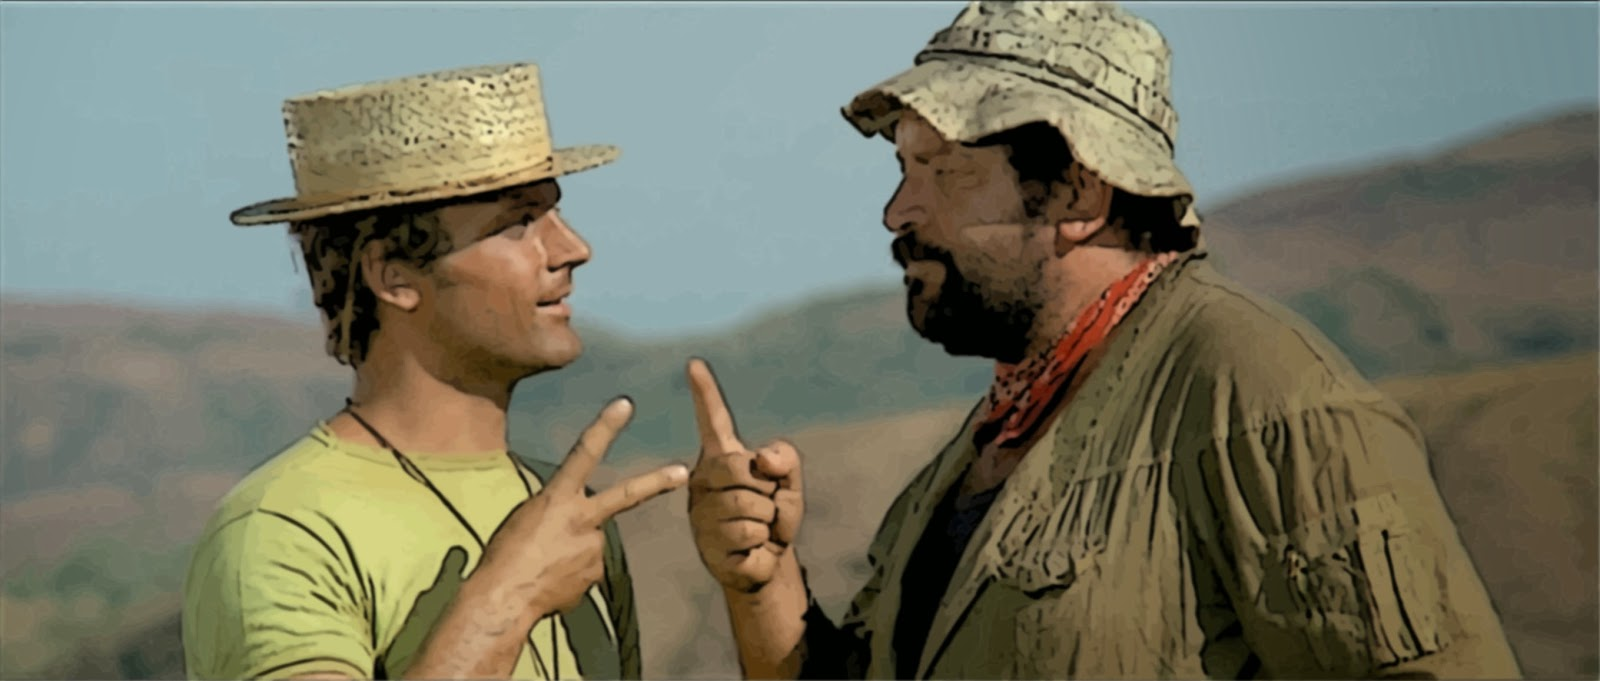 "Filmes Bud Spencer E Terence Hill Dublado throughout hqpress: bud spencer, da dupla ""trinity"", morre aos 86 anos"